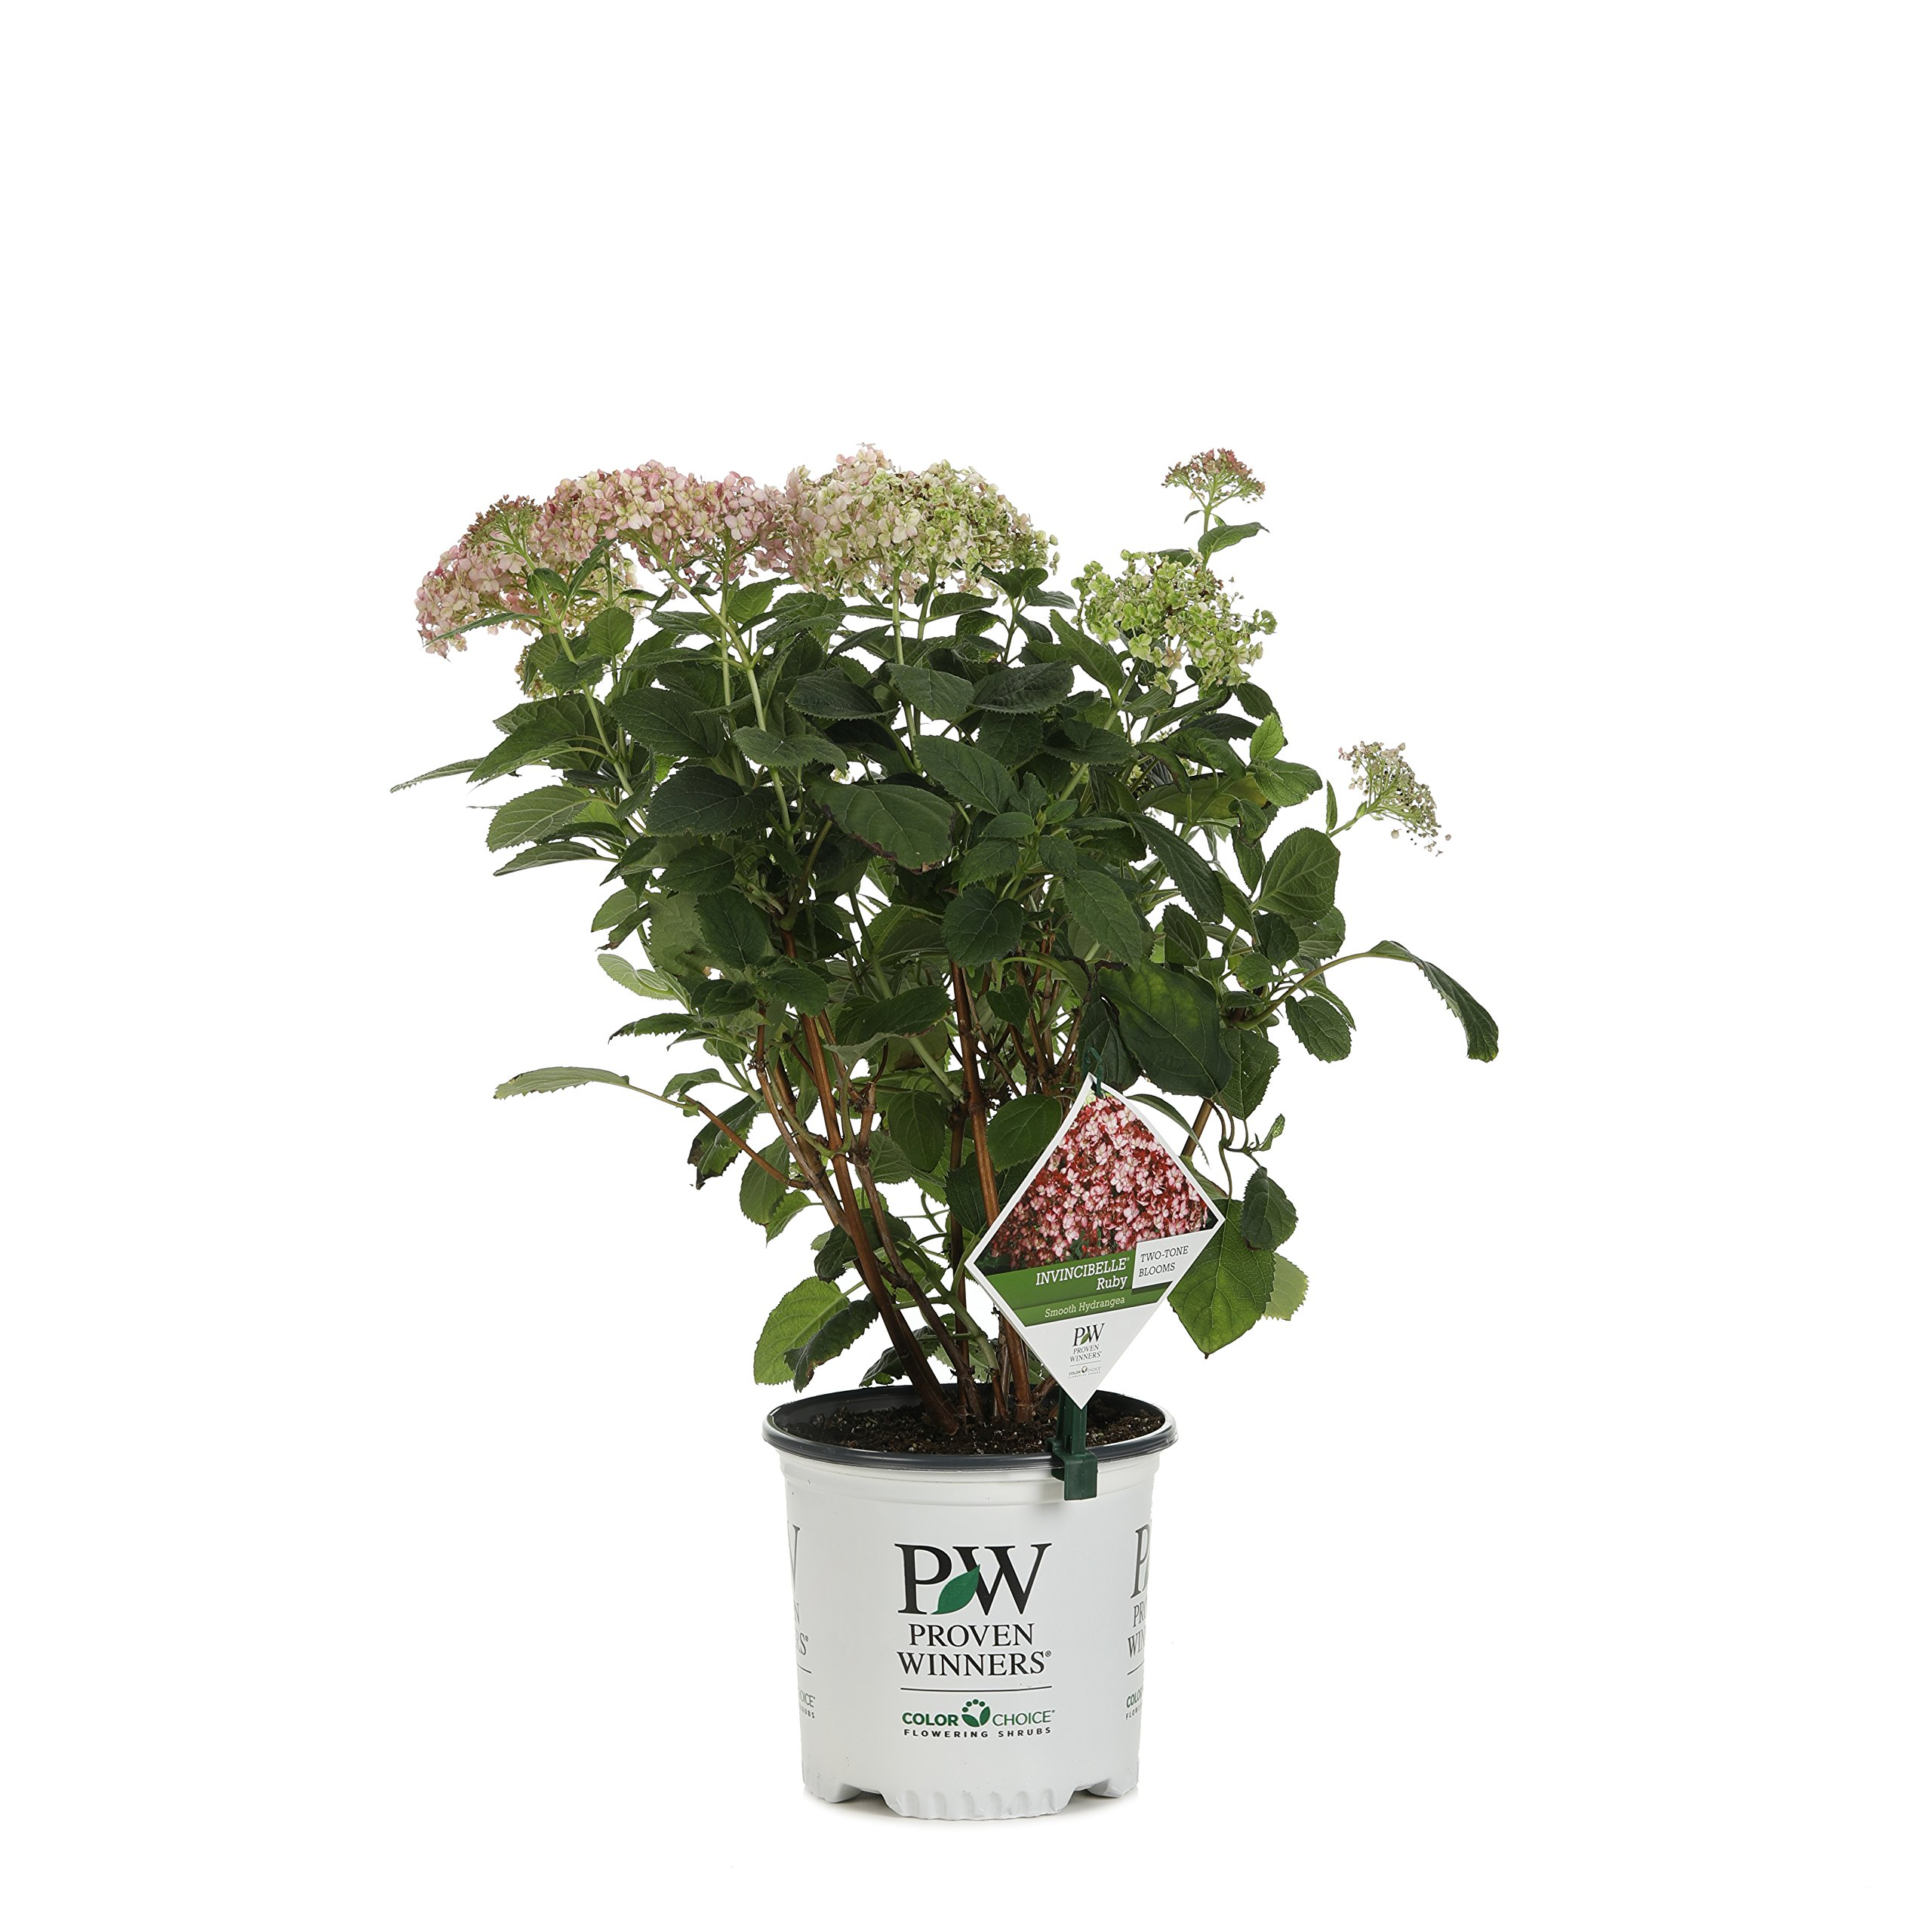 Invincibelle Ruby Smooth Hydrangea, Live Shrub, Red and Pink Flowers, 1 Gallon